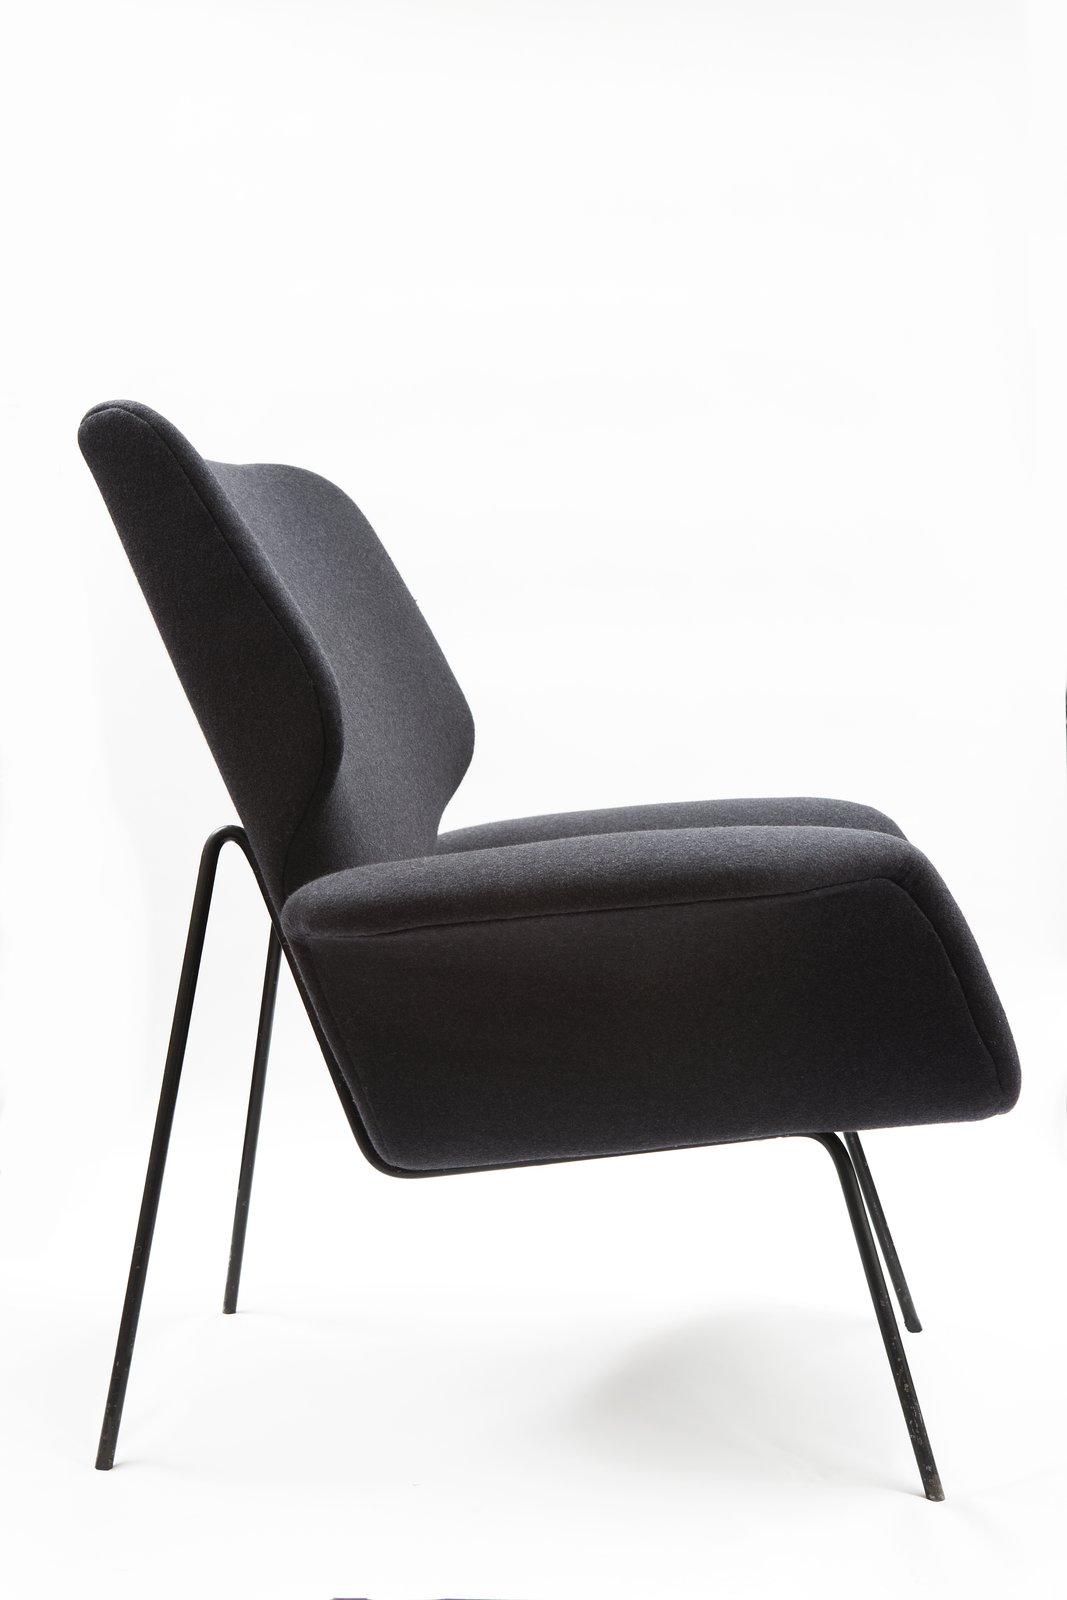 Graphic designer Alvin Lustig, known for designing more than 70 book covers in his lifetime, ventured into furniture and interiors later in his career. Upholstered chair for Paramount Furniture, 1949. Photo by Conner/Healy.  Photo 4 of 6 in Jewish Designers' Influence on Midcentury Modernism